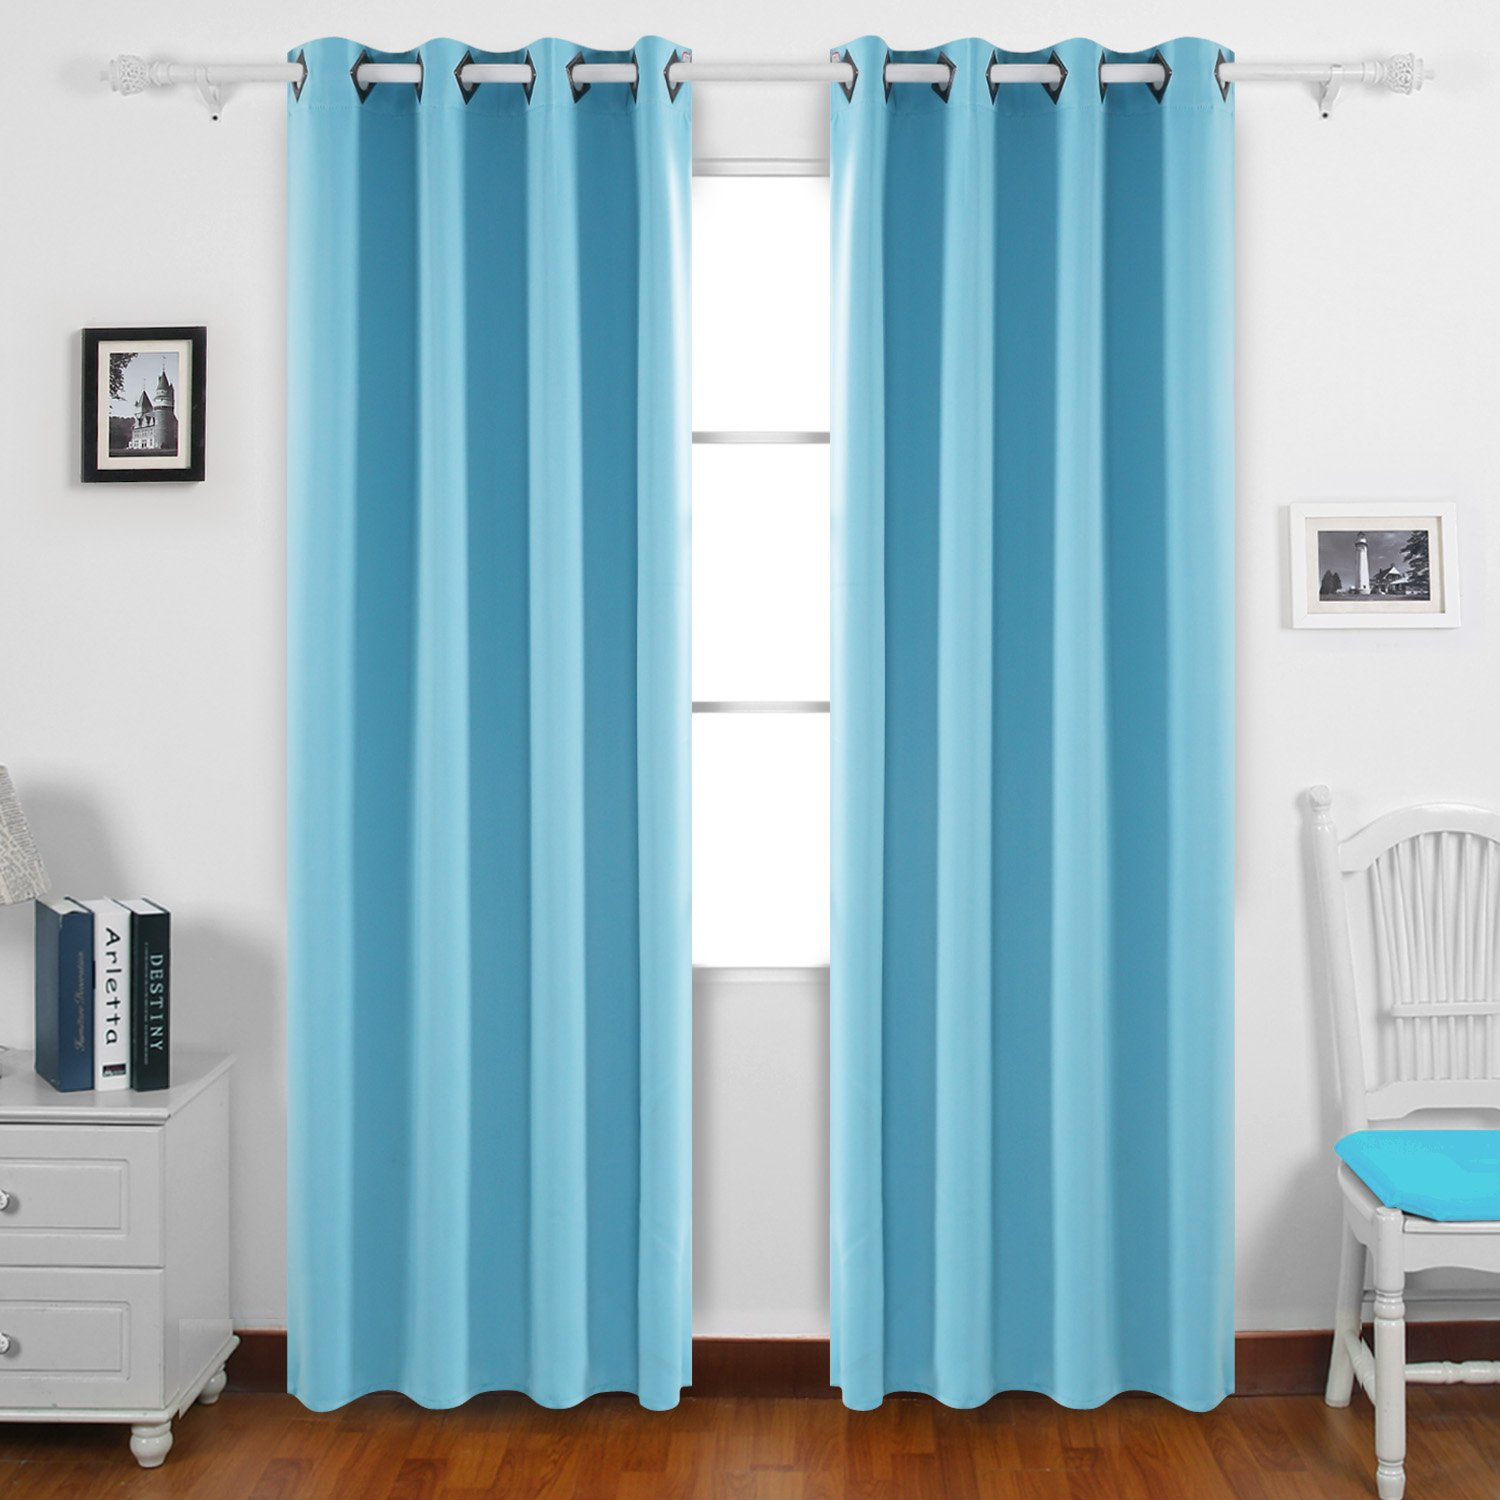 at sears eclipse thermatec size rarens inspirations top for backed blackout inch picture full panel com tuscan amazon of drapesthermal stripe and sale pole curtain drapes length rare curtains thermal walmart